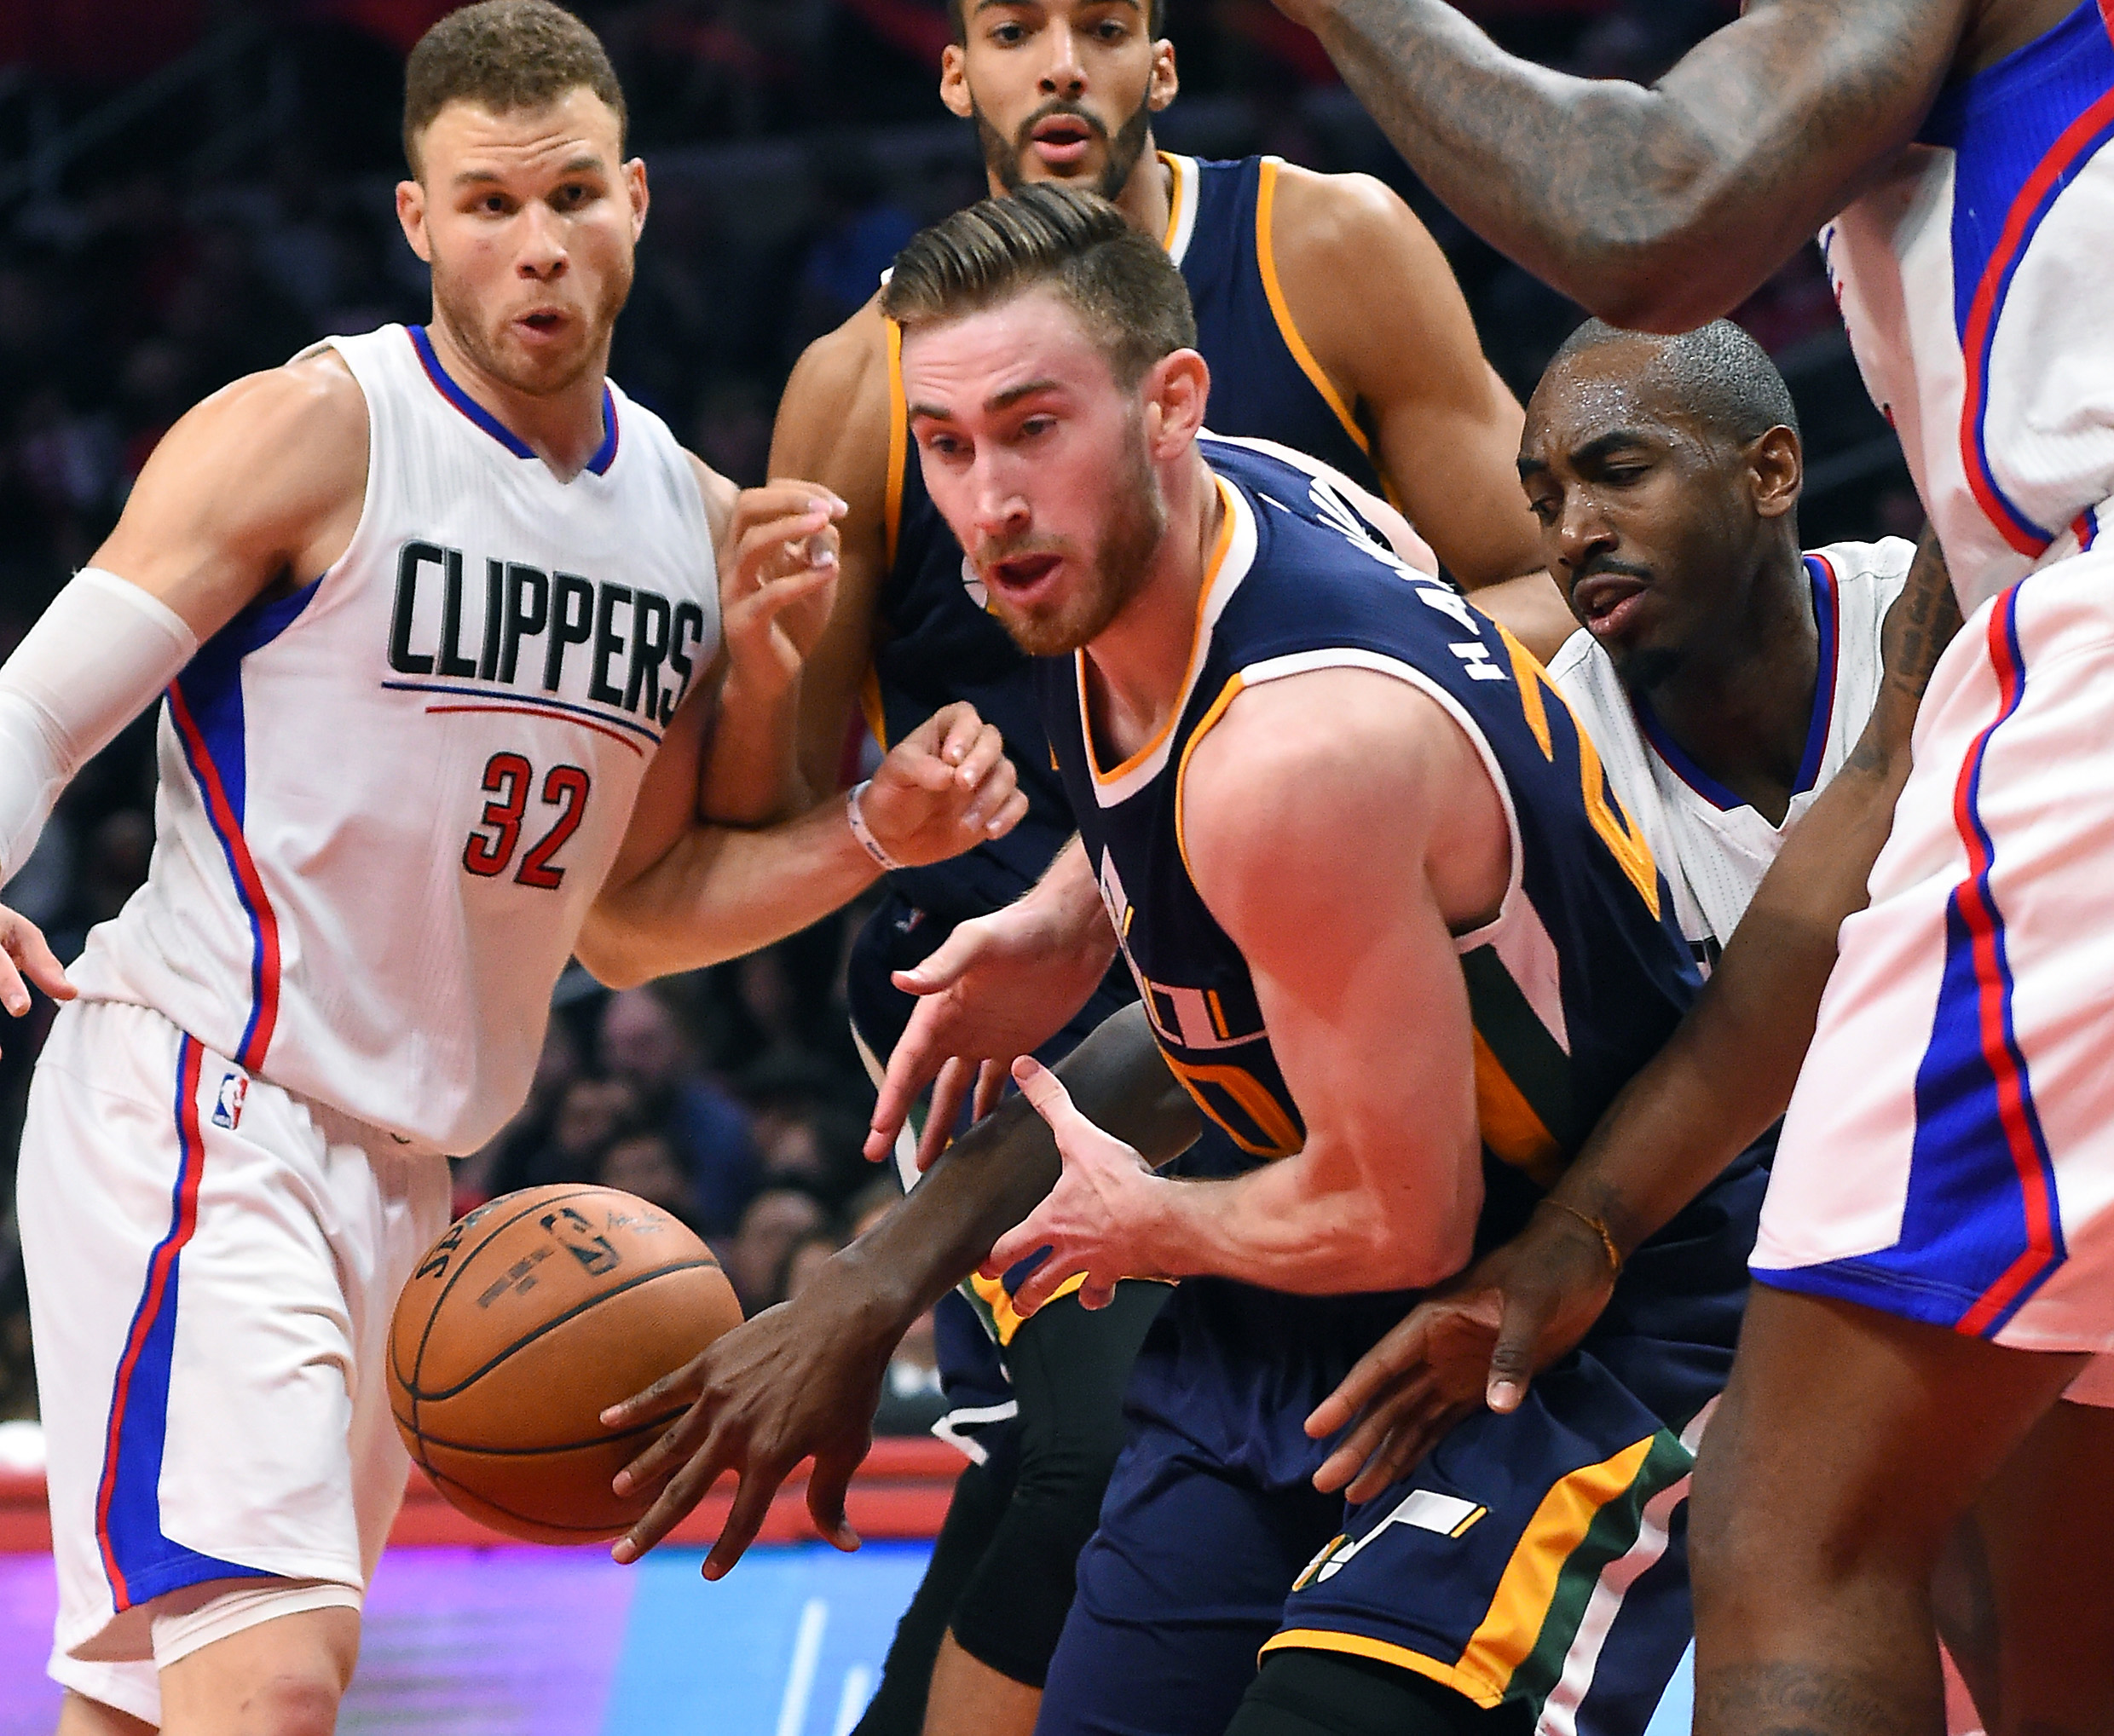 Mar 25, 2017; Los Angeles, CA, USA; Los Angeles Clippers forward Blake Griffin (32) and forward Luc Mbah a Moute (12) defend Utah Jazz forward Gordon Hayward (20) under the basket in the second half of the game at Staples Center. Clippers won 108-95. Mandatory Credit: Jayne Kamin-Oncea-USA TODAY Sports